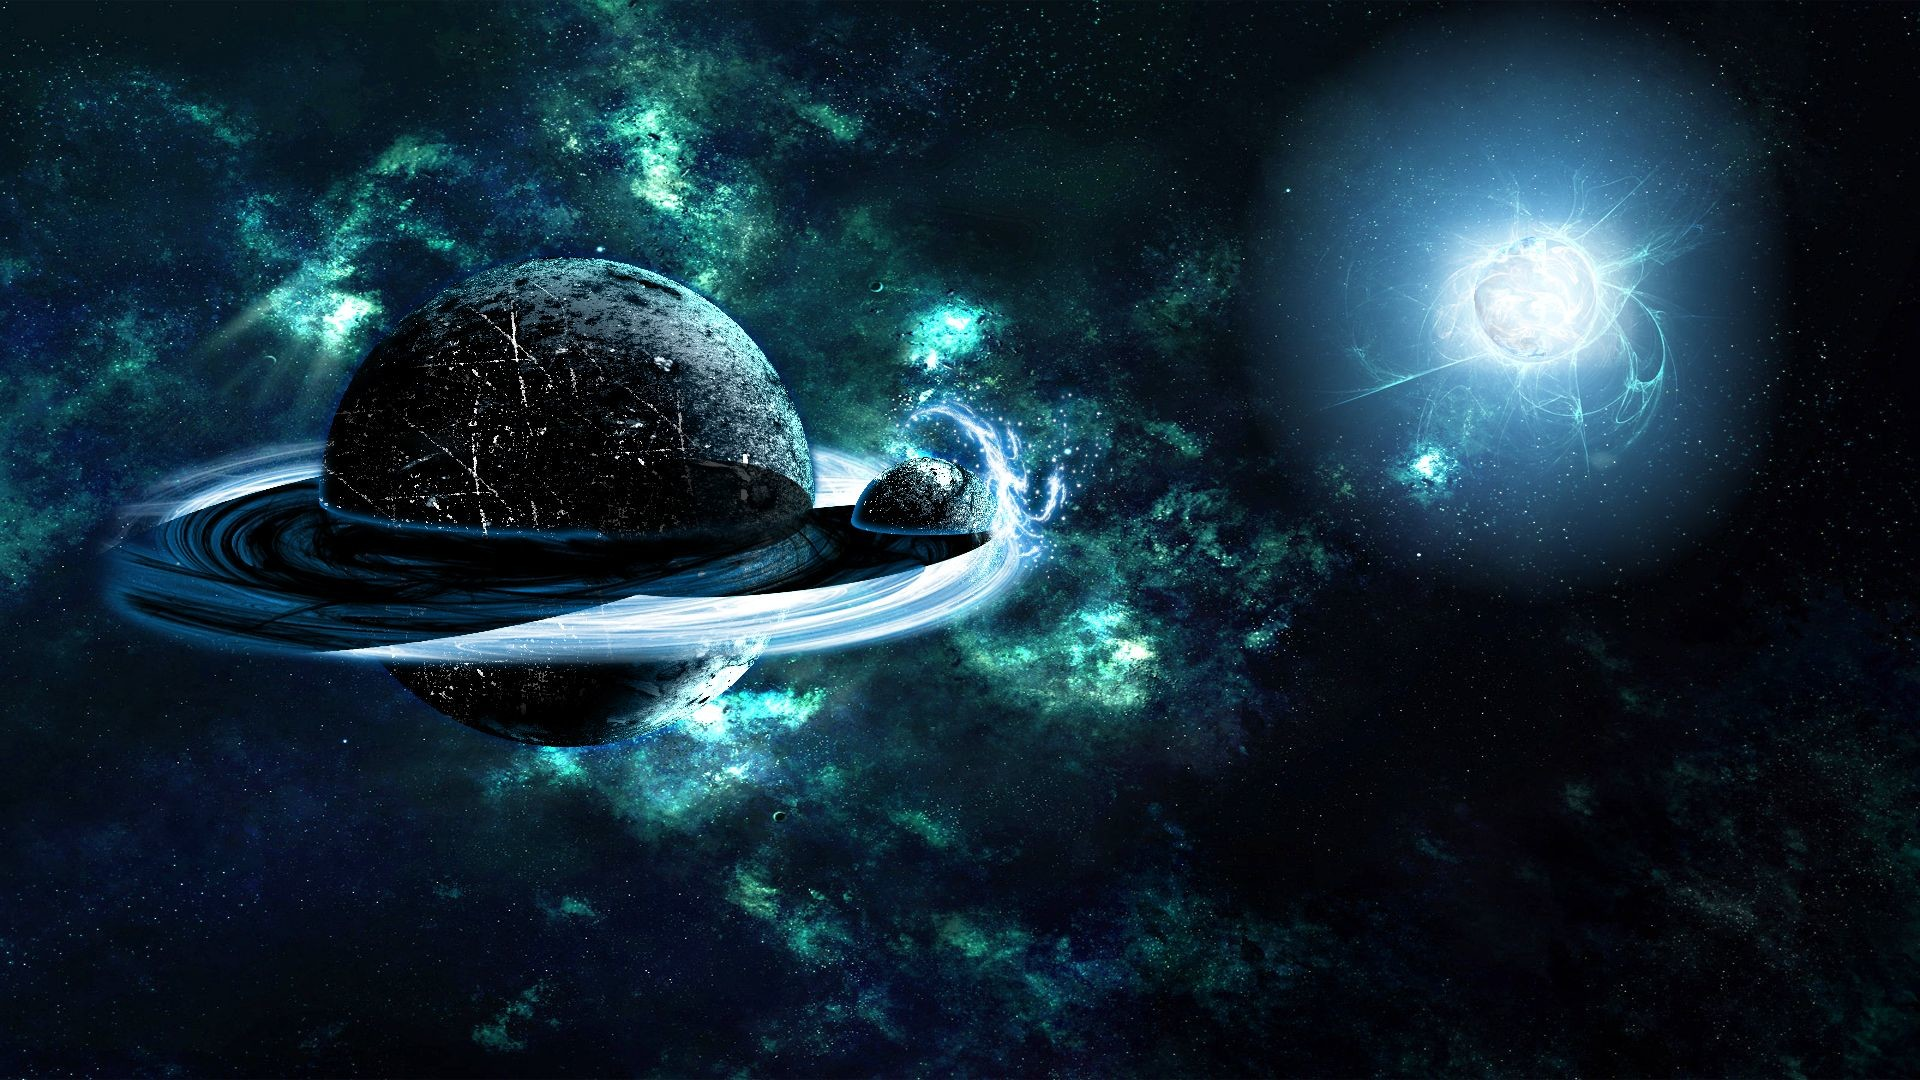 Space Wallpapers Hd Free Download